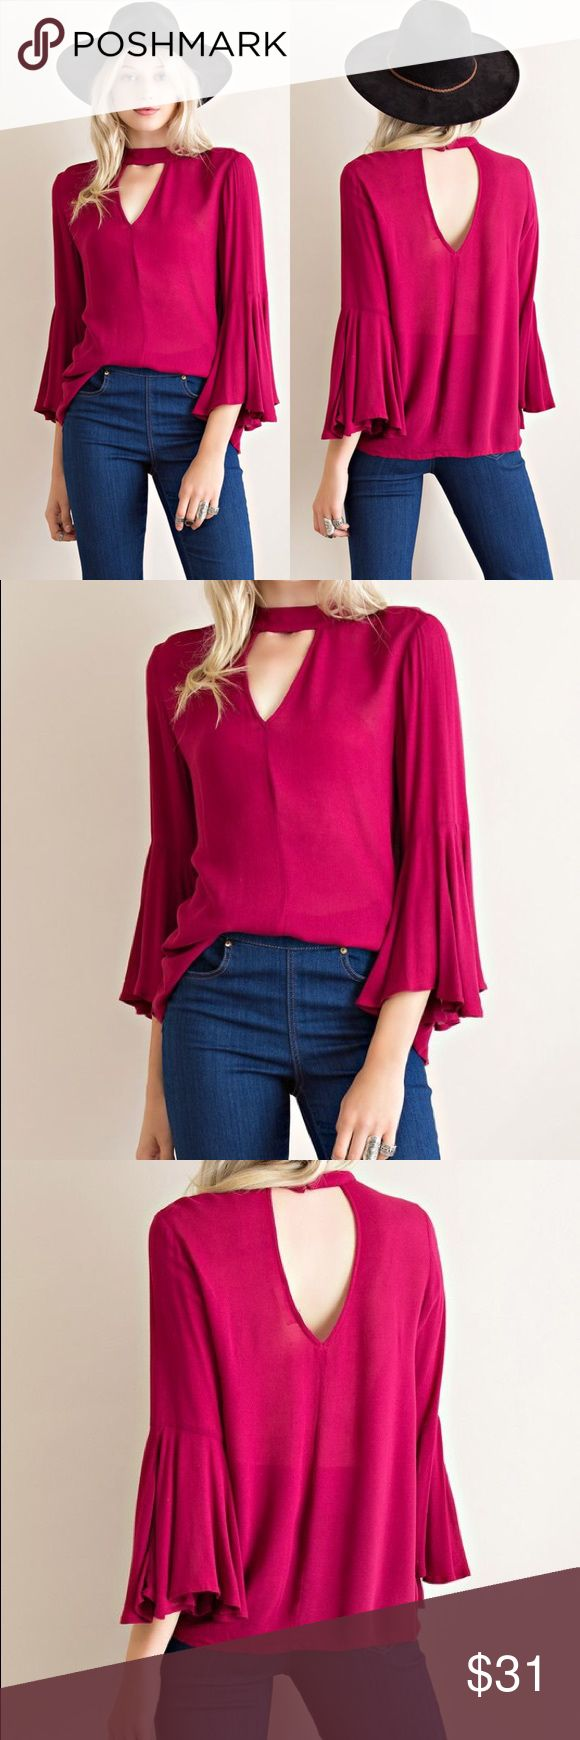 1 MEDIUM LEFTBell Sleeve Choker Blouse NOT FREE PEOPLE...similar to Free People style. Bell sleeved chocker top featuring front and back cut outs...slightly sheer. Free People Tops